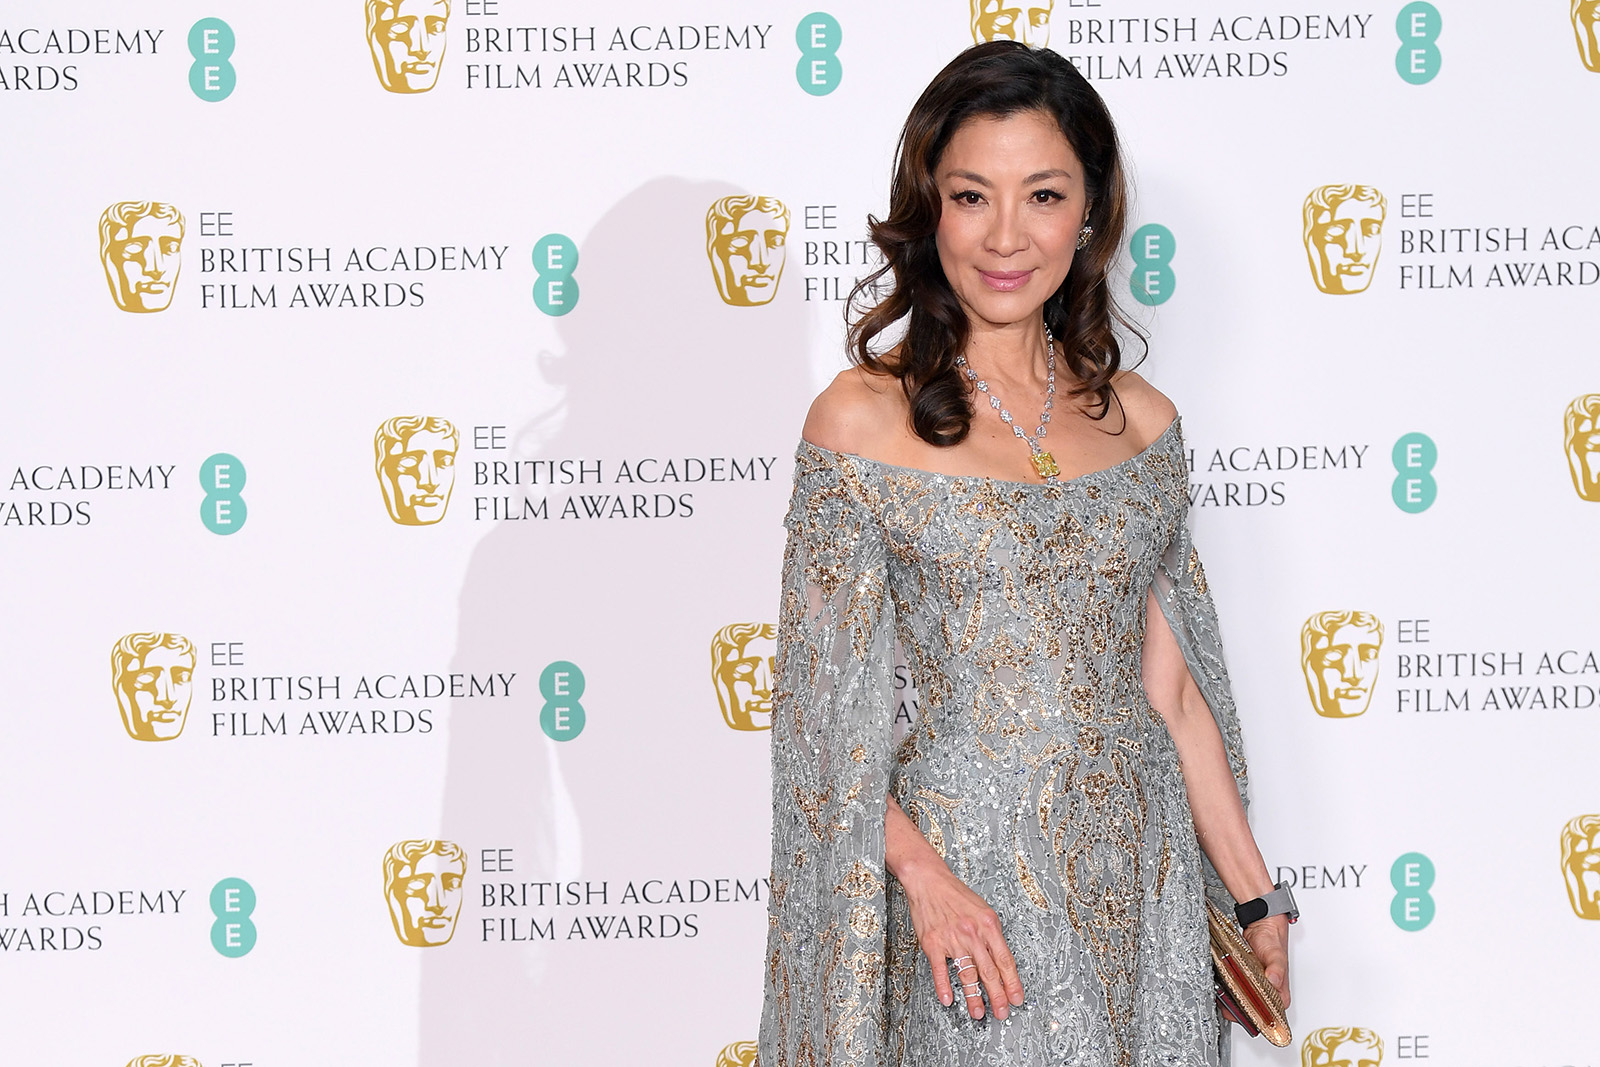 Michelle Yeoh at the 2019 BAFTA awards wearing Moussaieff necklace with 74ct natural fancy intense yellow diamond, and 80ct colourless diamonds, and earrings with 17ct natural fancy intense yellow diamonds, and 7 carats of colourless diamonds